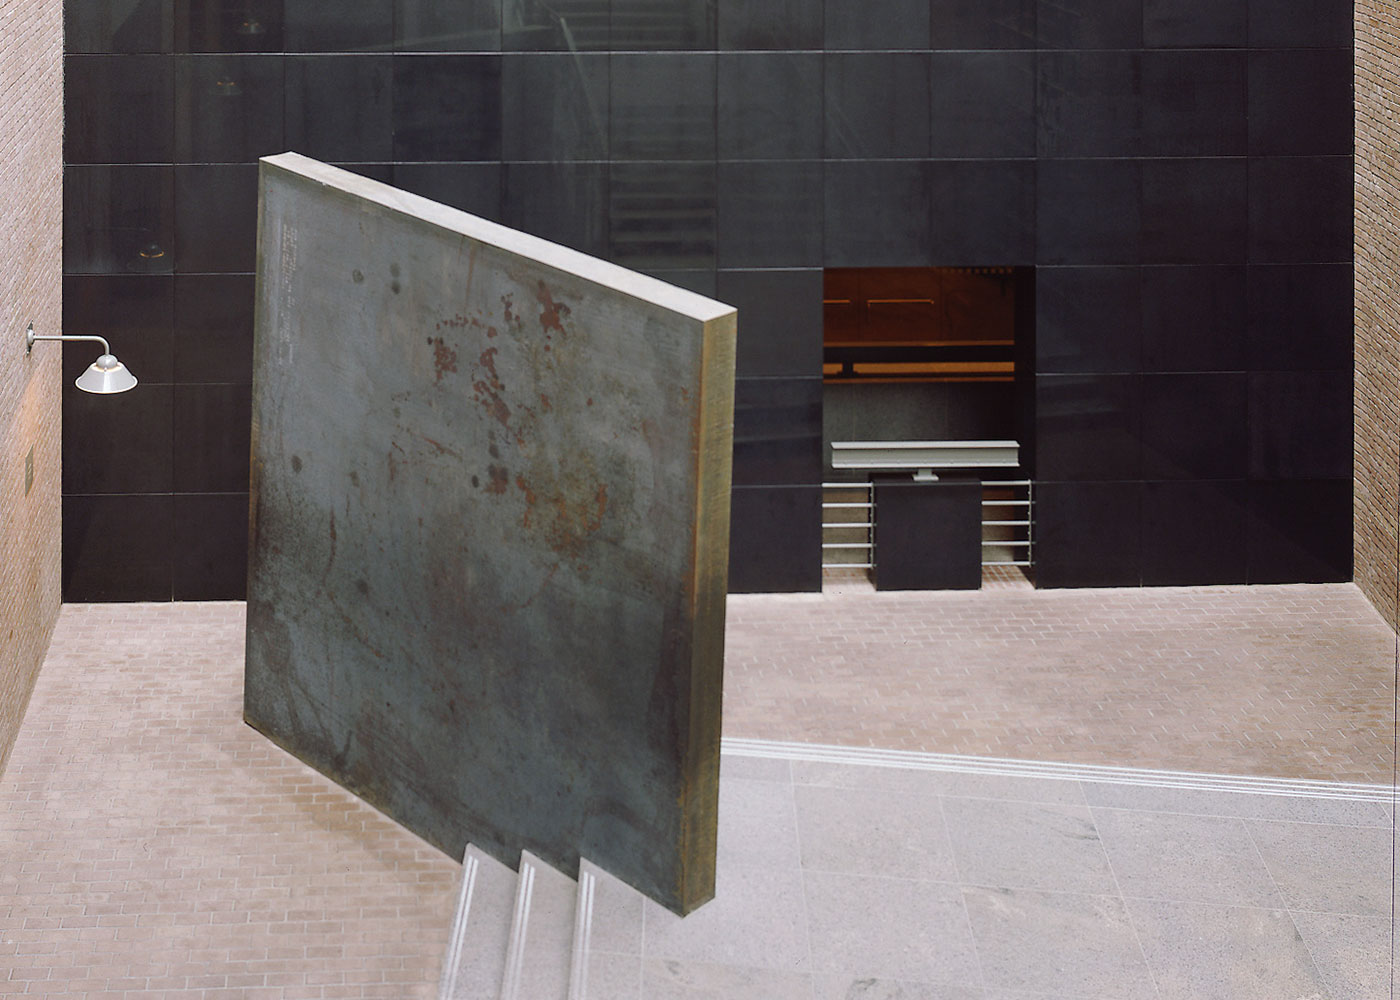 Richard Serra's sculpture <i>Gravity</i> is wedged into the staircase in the southwest corner of the Hall of Witness.